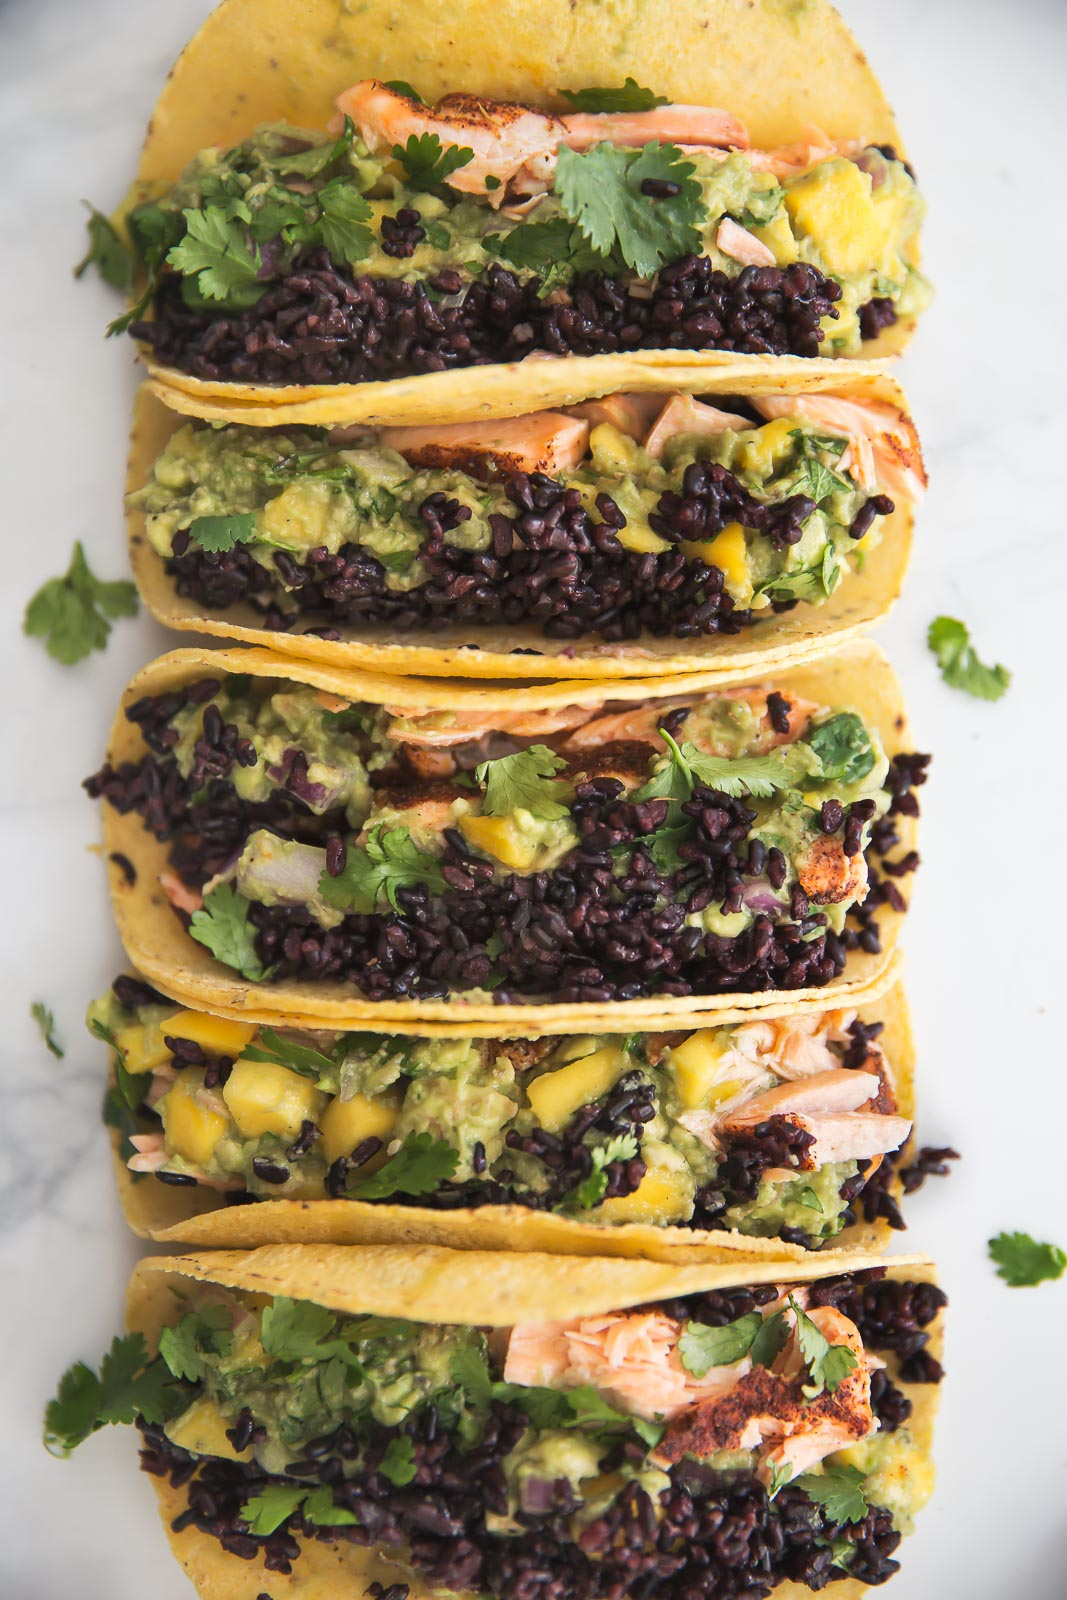 salmon tacos topped with black rice and mango